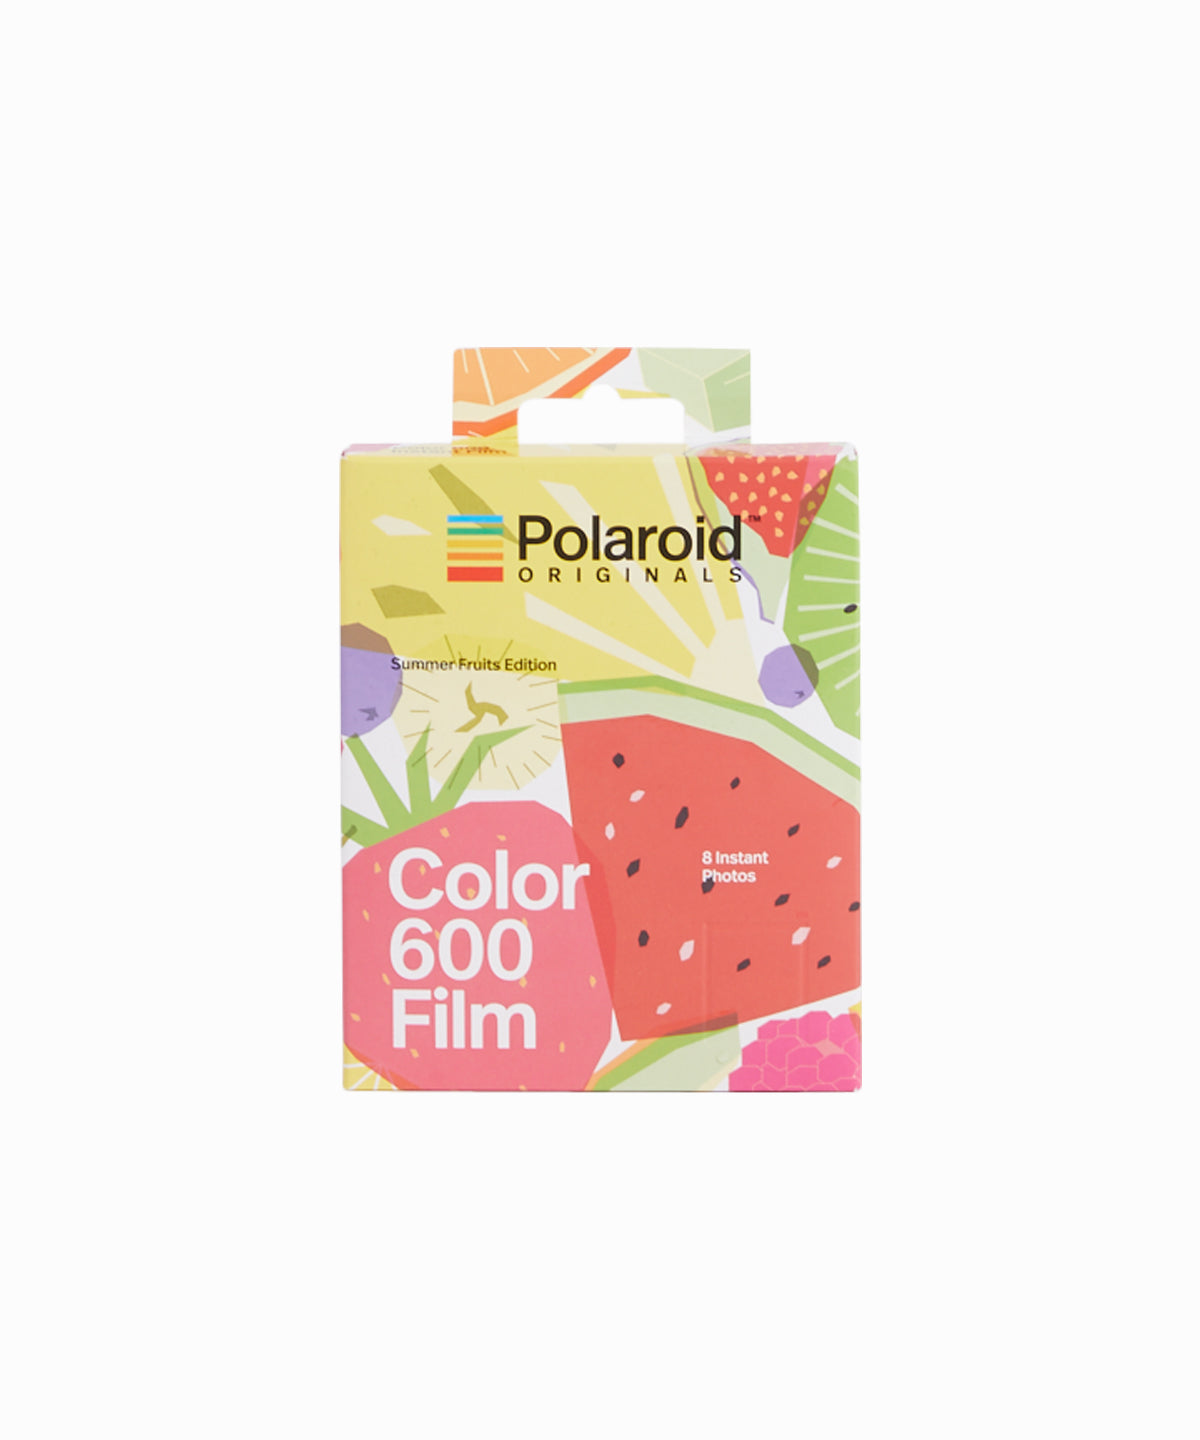 Polaroid Summer Fruits Edition Color 600 Film